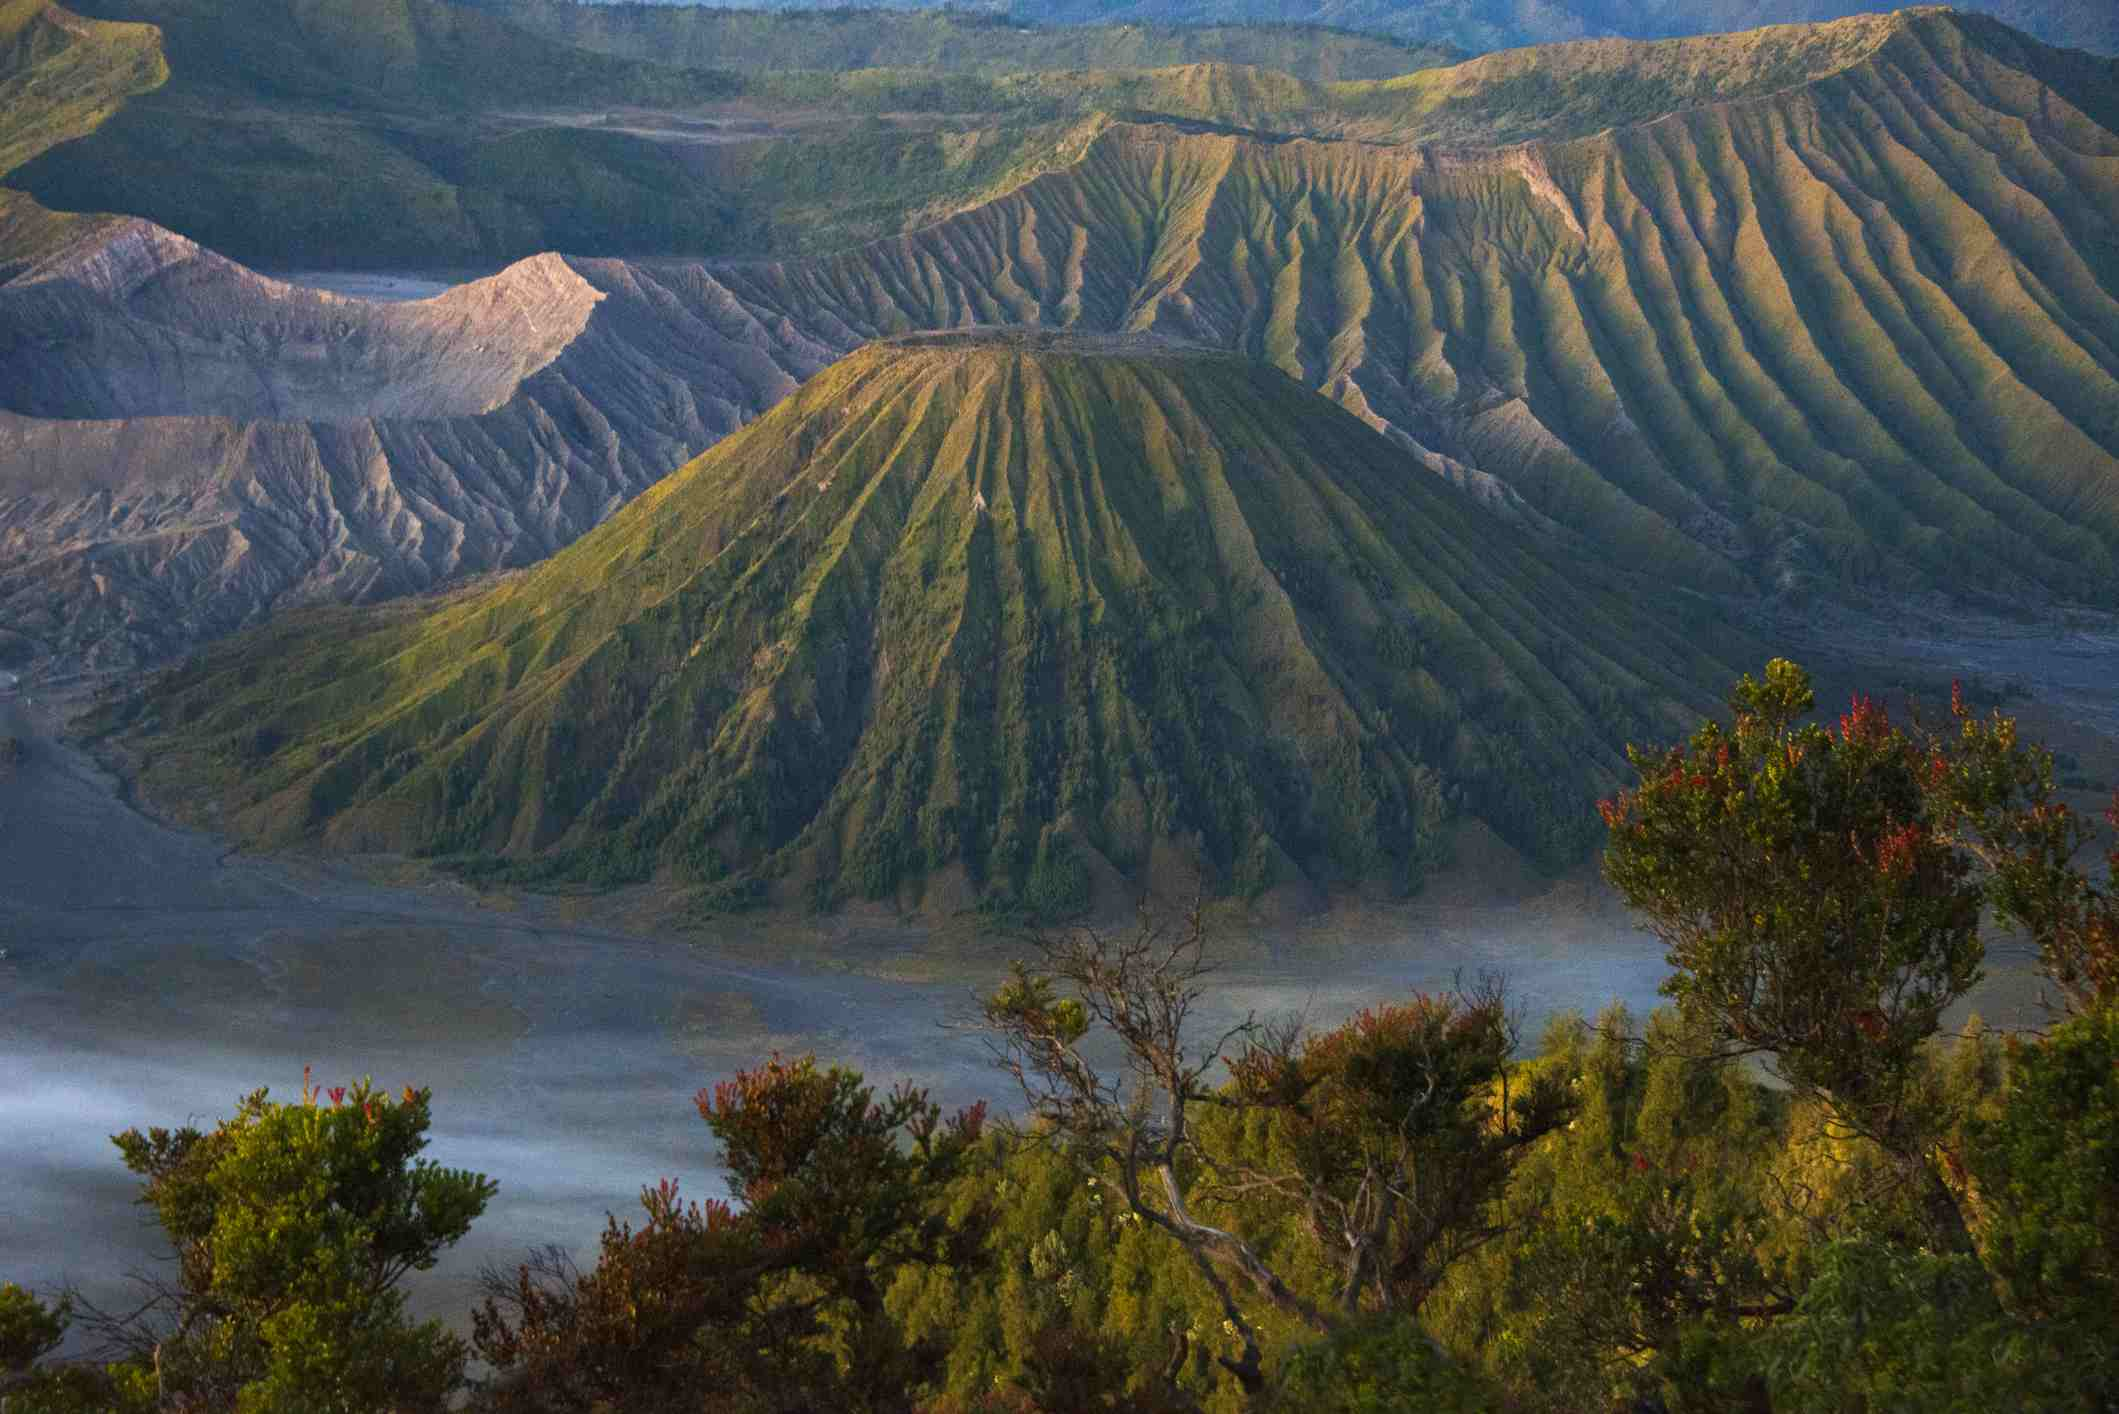 The green, cone-shaped Mount Batok, center, with Mount Bromo to the side